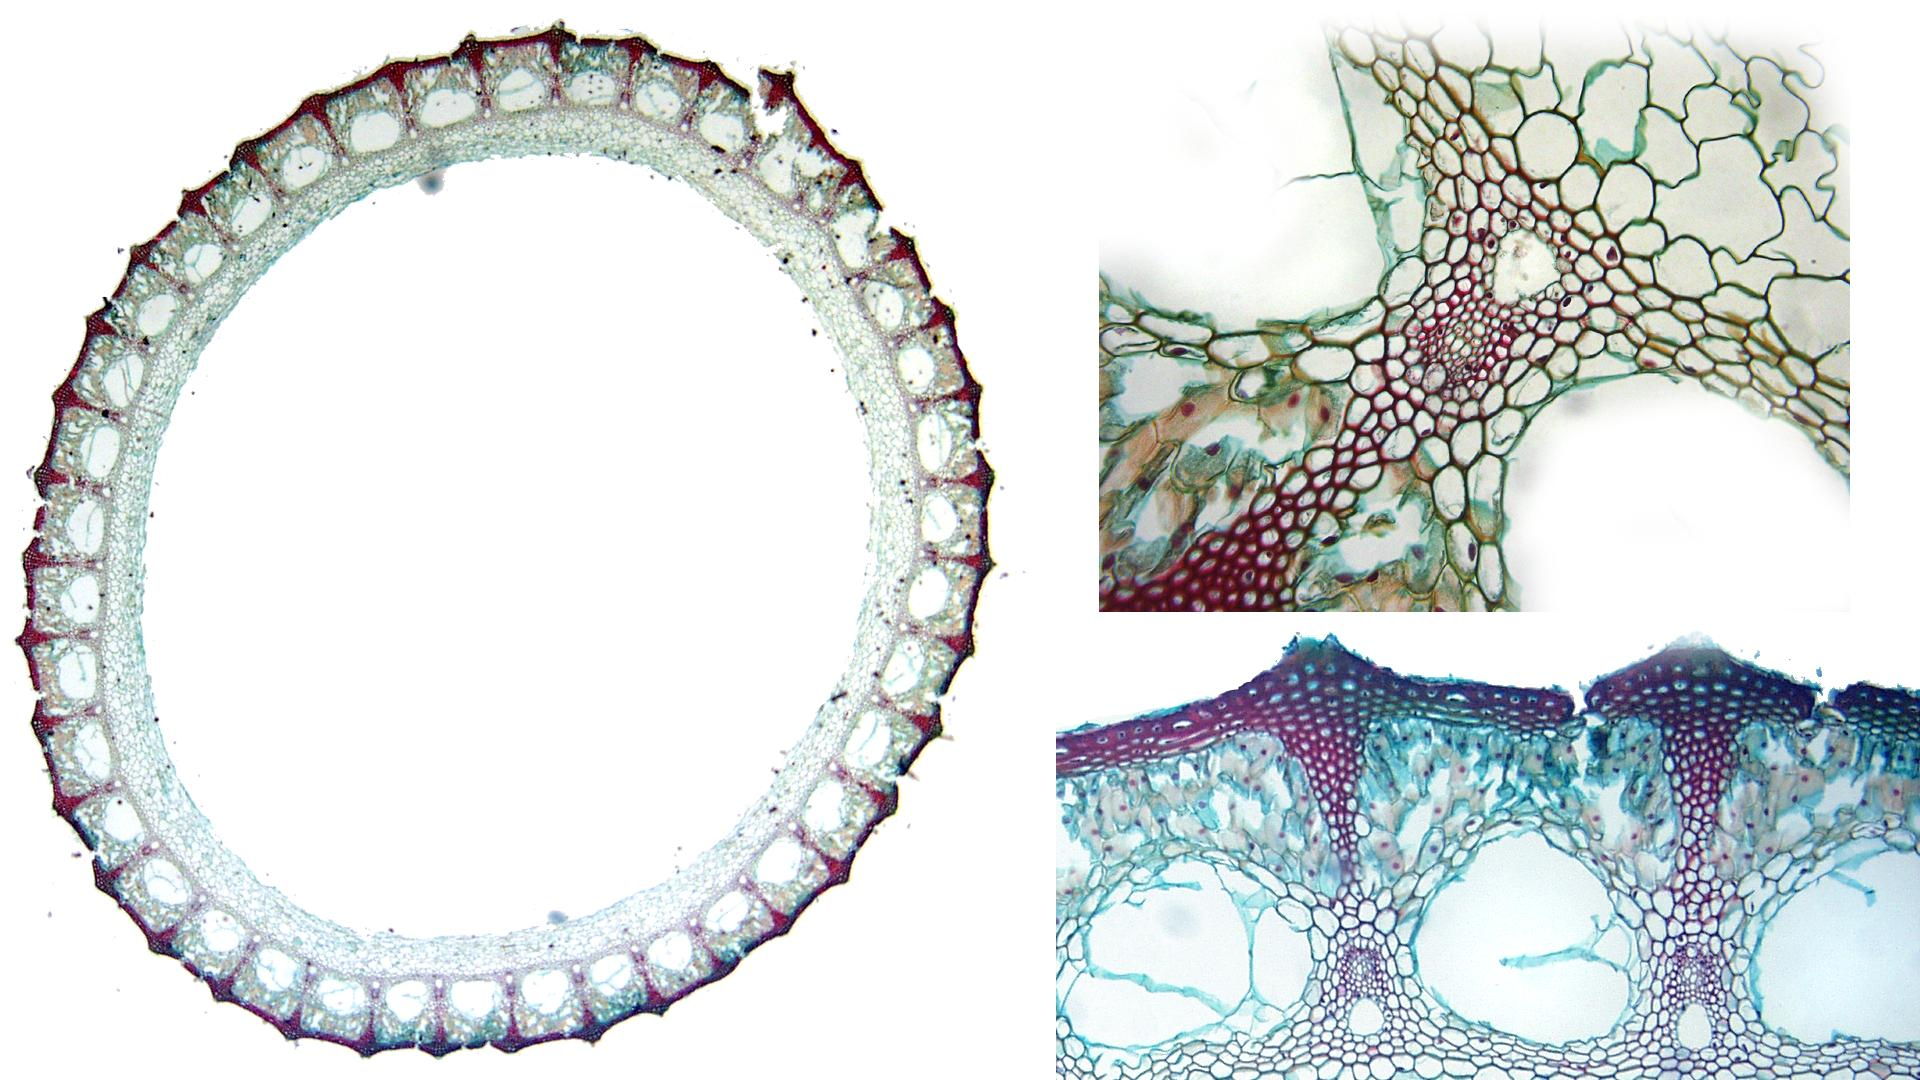 Equisetum - cross section of stem